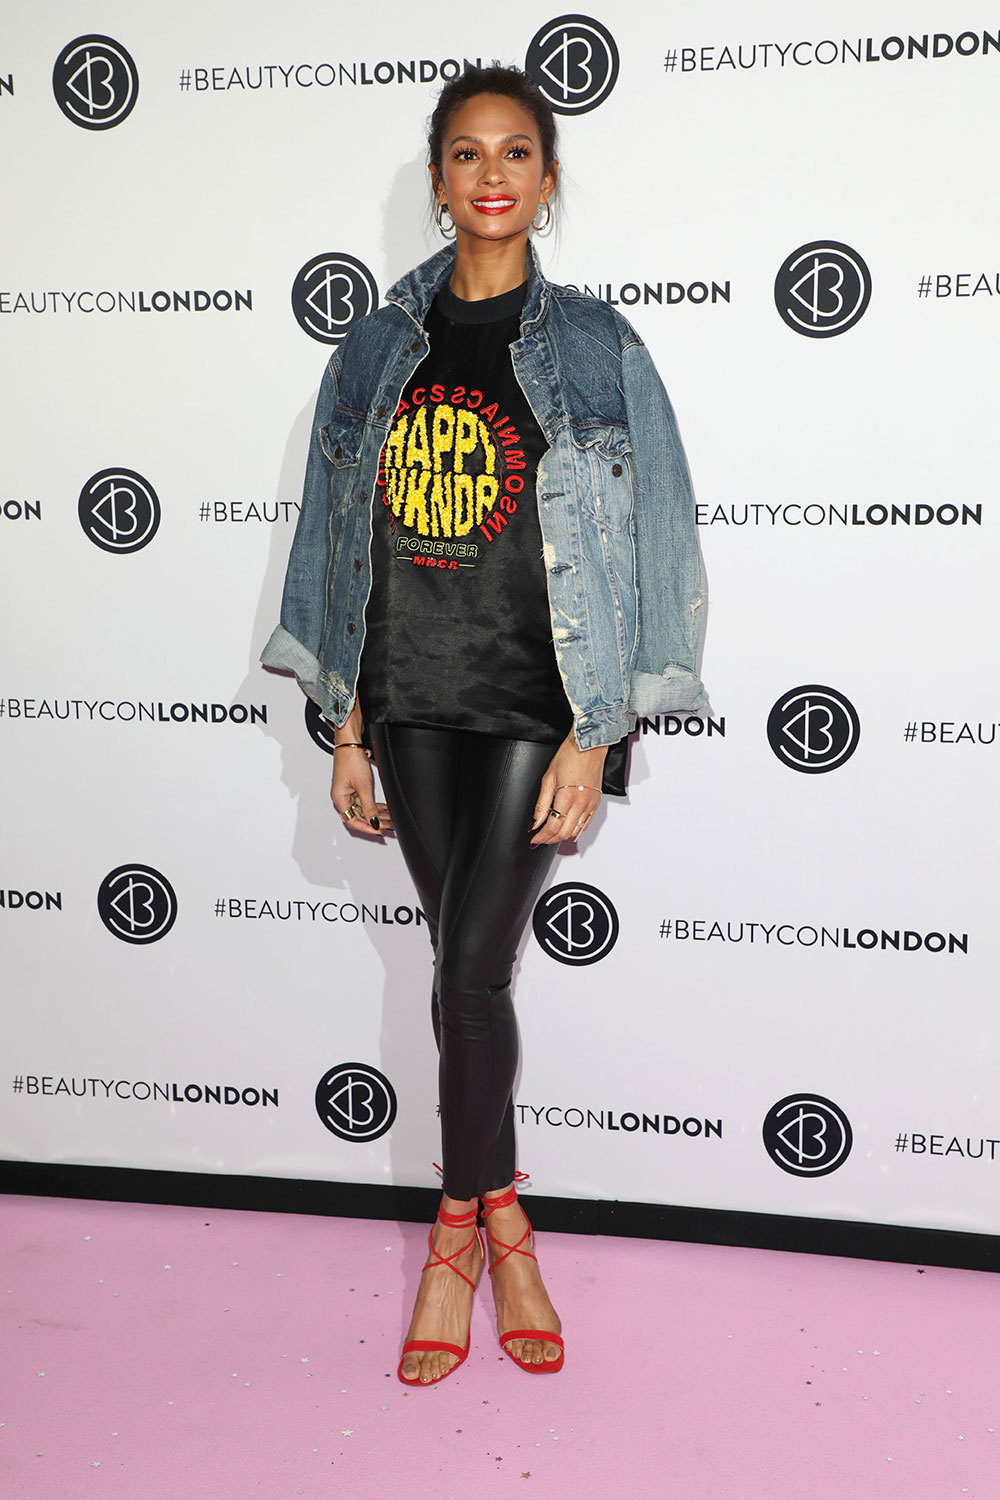 Alesha Dixon Looking Fly - The rapper and Britain's Got Talent judge MC'd the mainstage at Beautycon this year in this relaxed and chic look with a denim jacket.